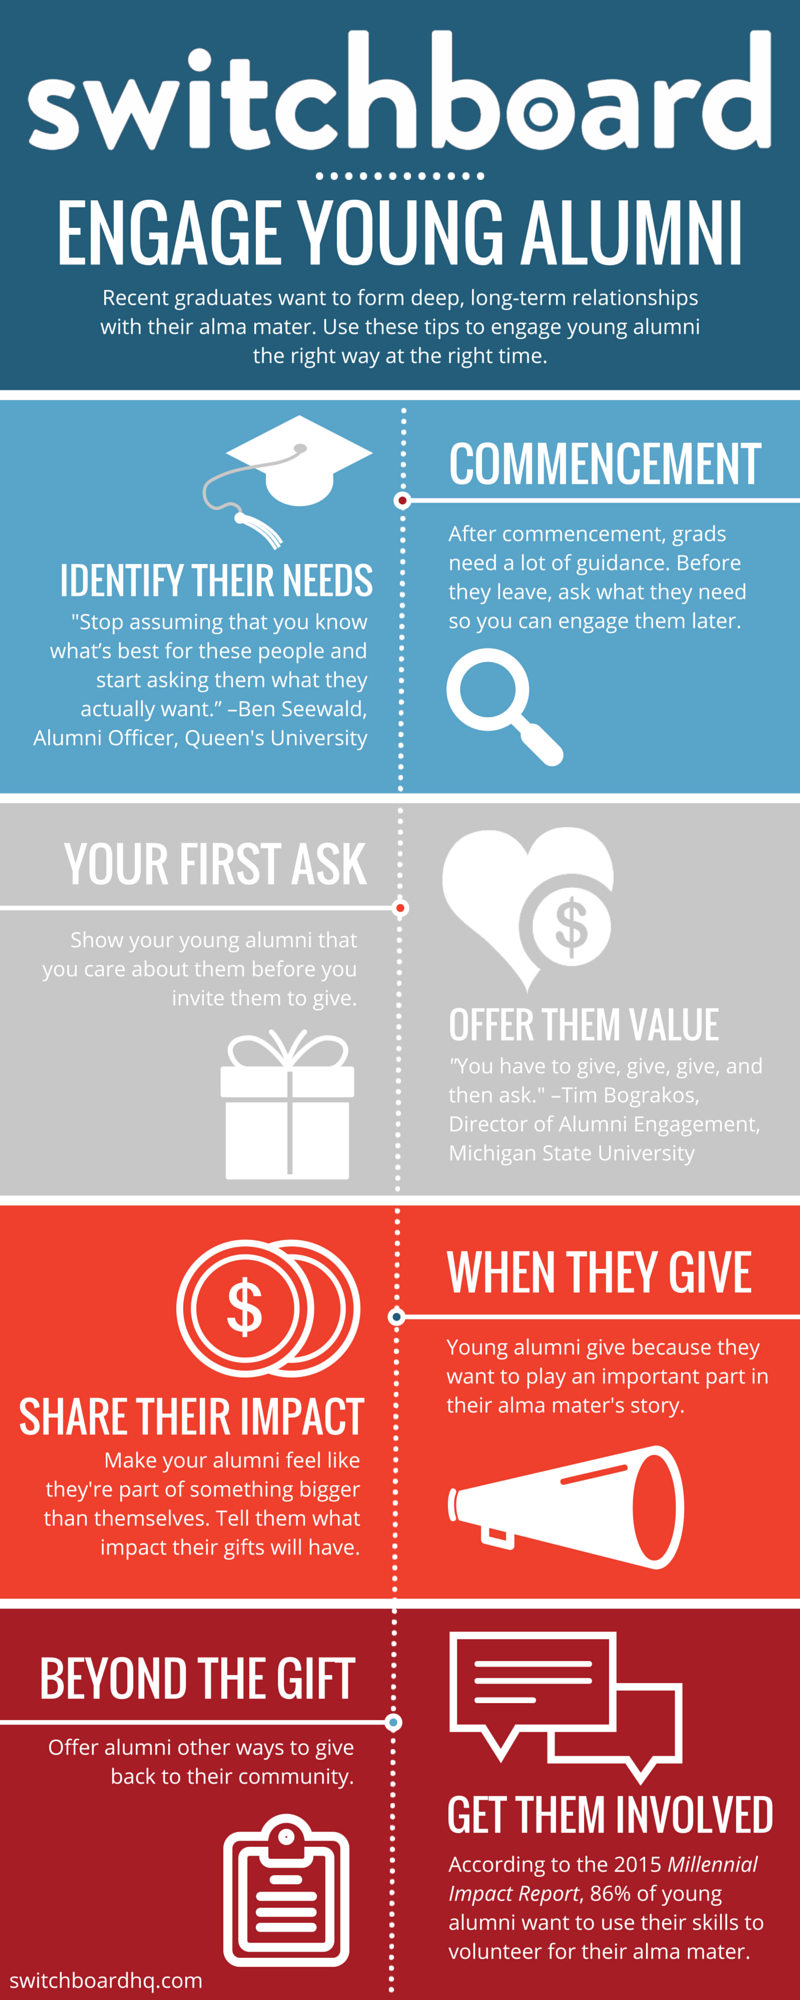 Engage young alumni infographic